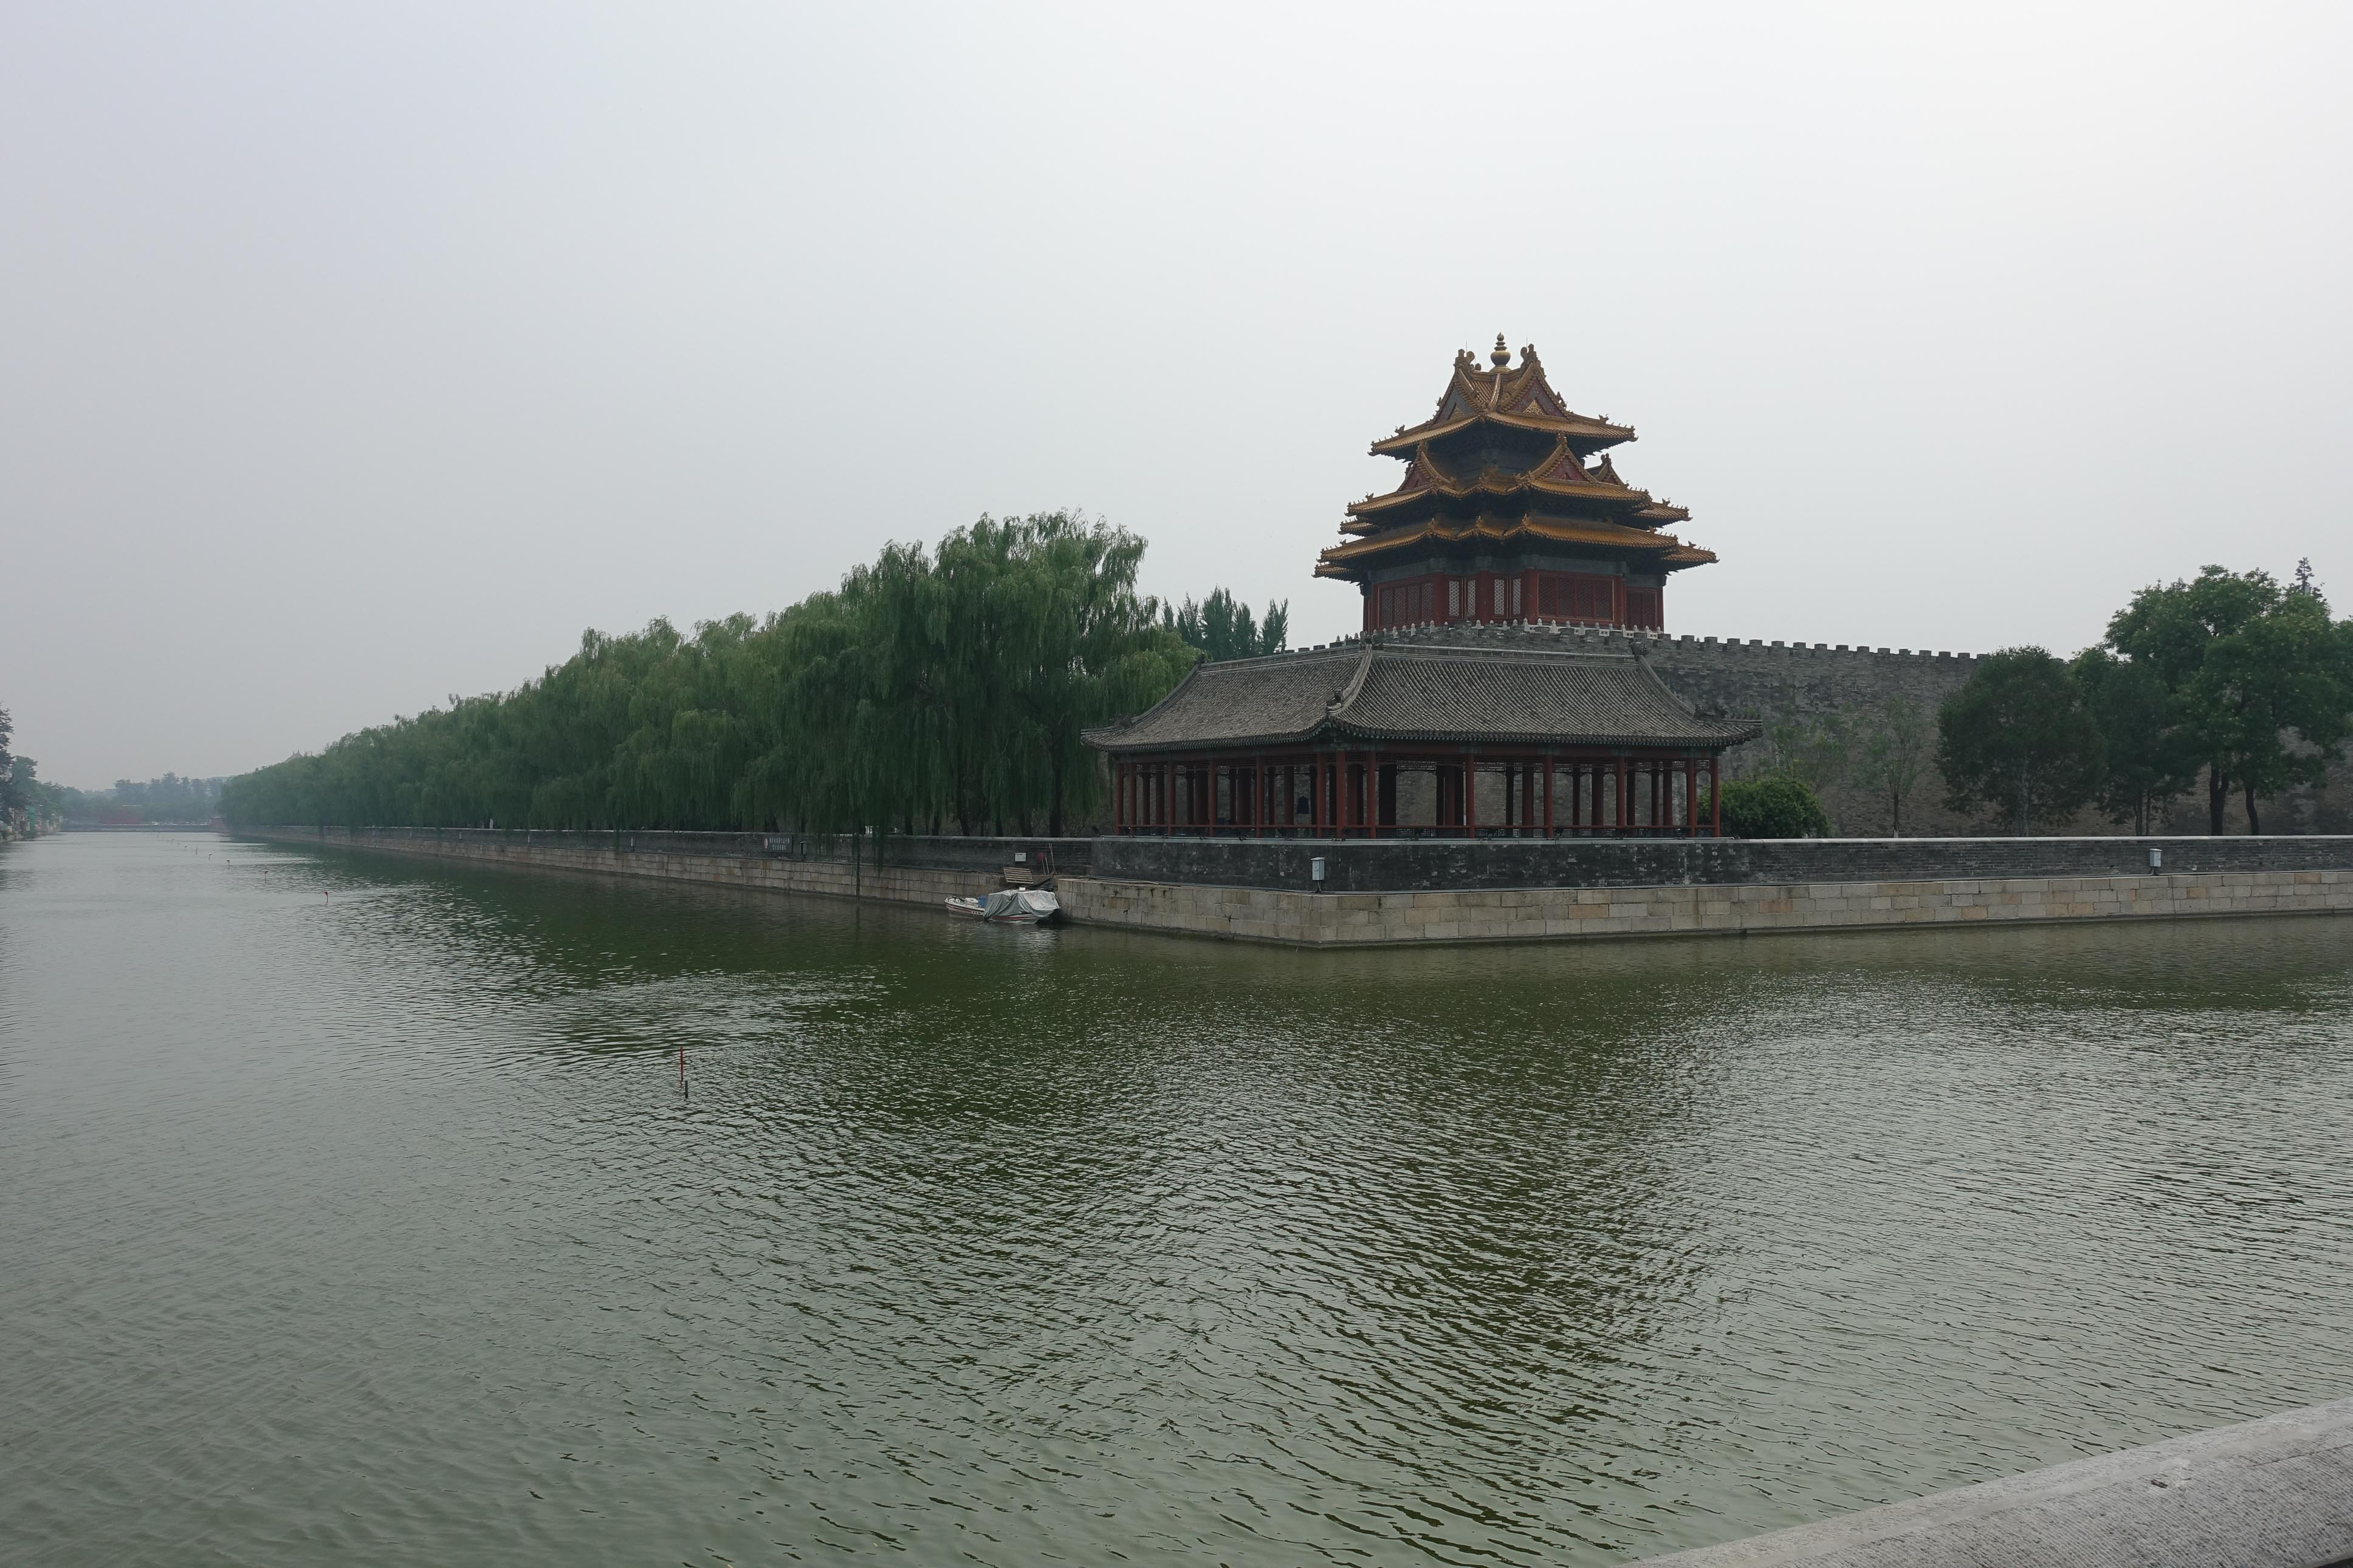 The moat around the Forbidden Palace